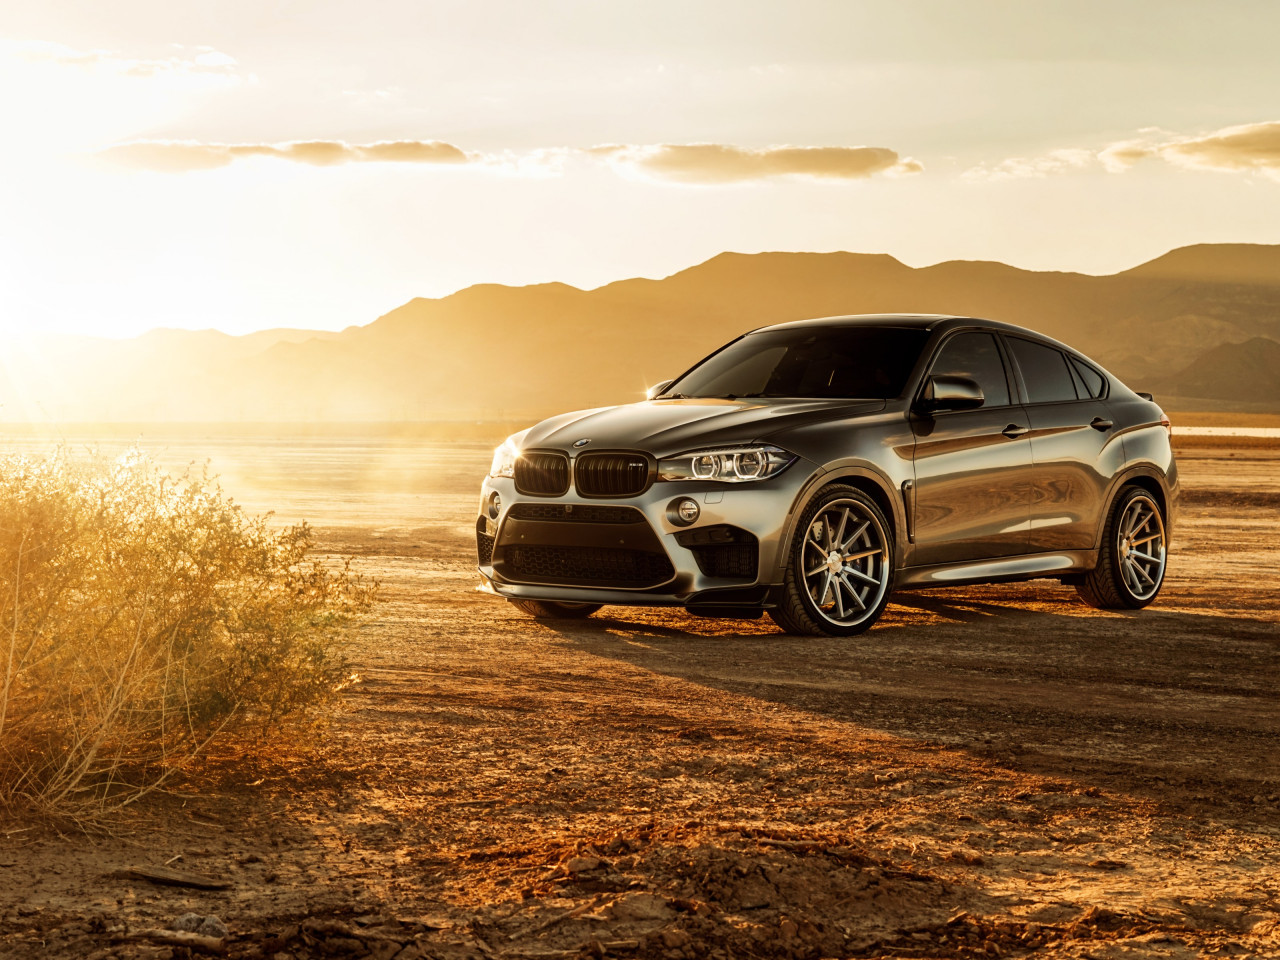 Ferrada BMW X6M Glory | 1280x960 wallpaper